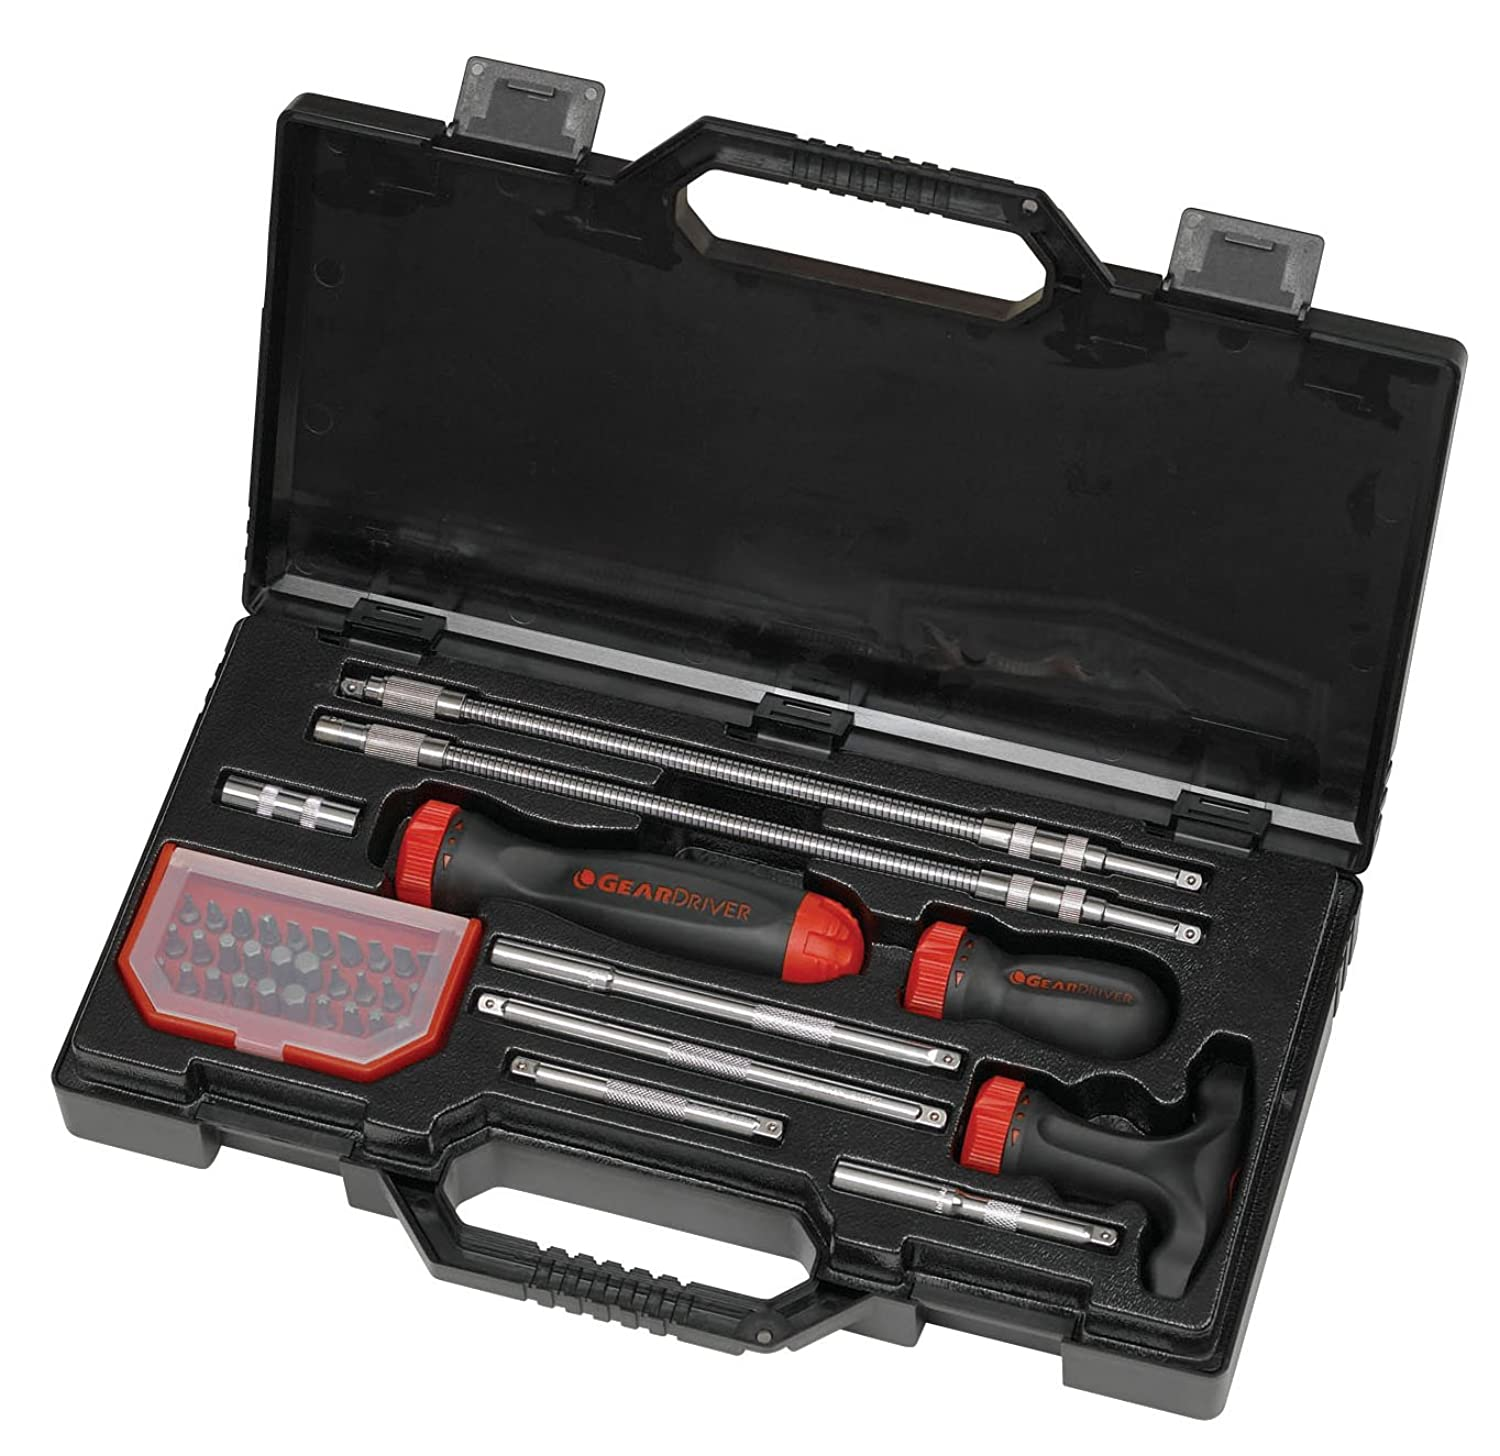 GEARWRENCH 8940 40 Piece Ratcheting Screwdriver Set